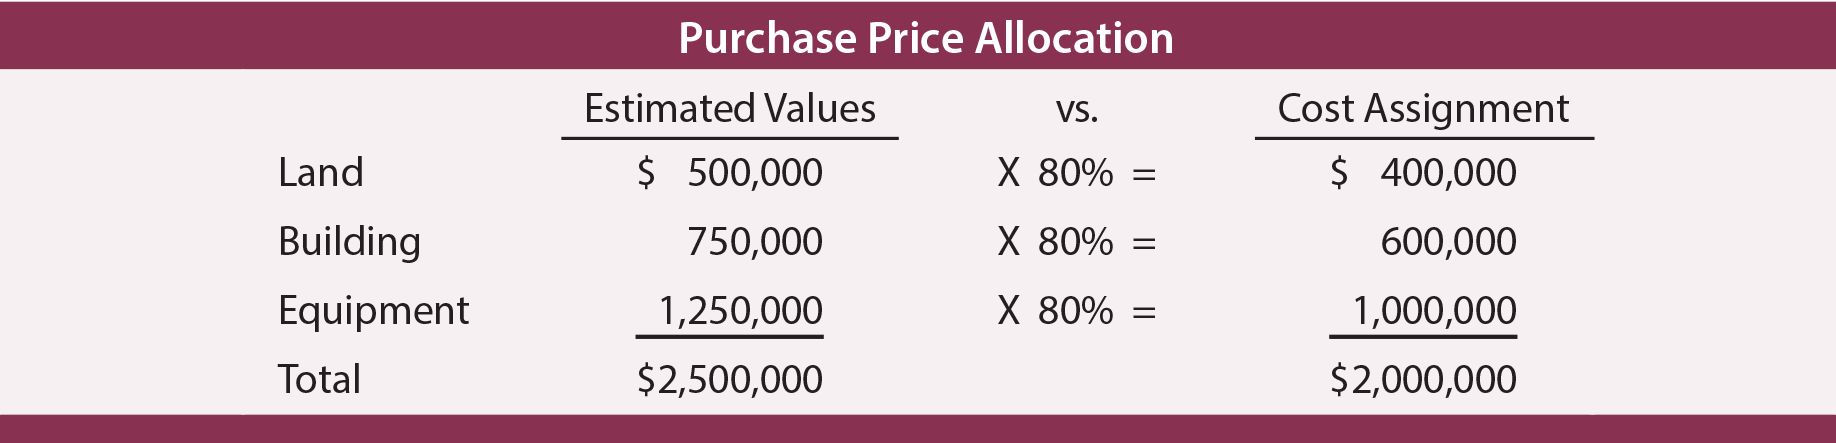 Purchase Price Allocation example